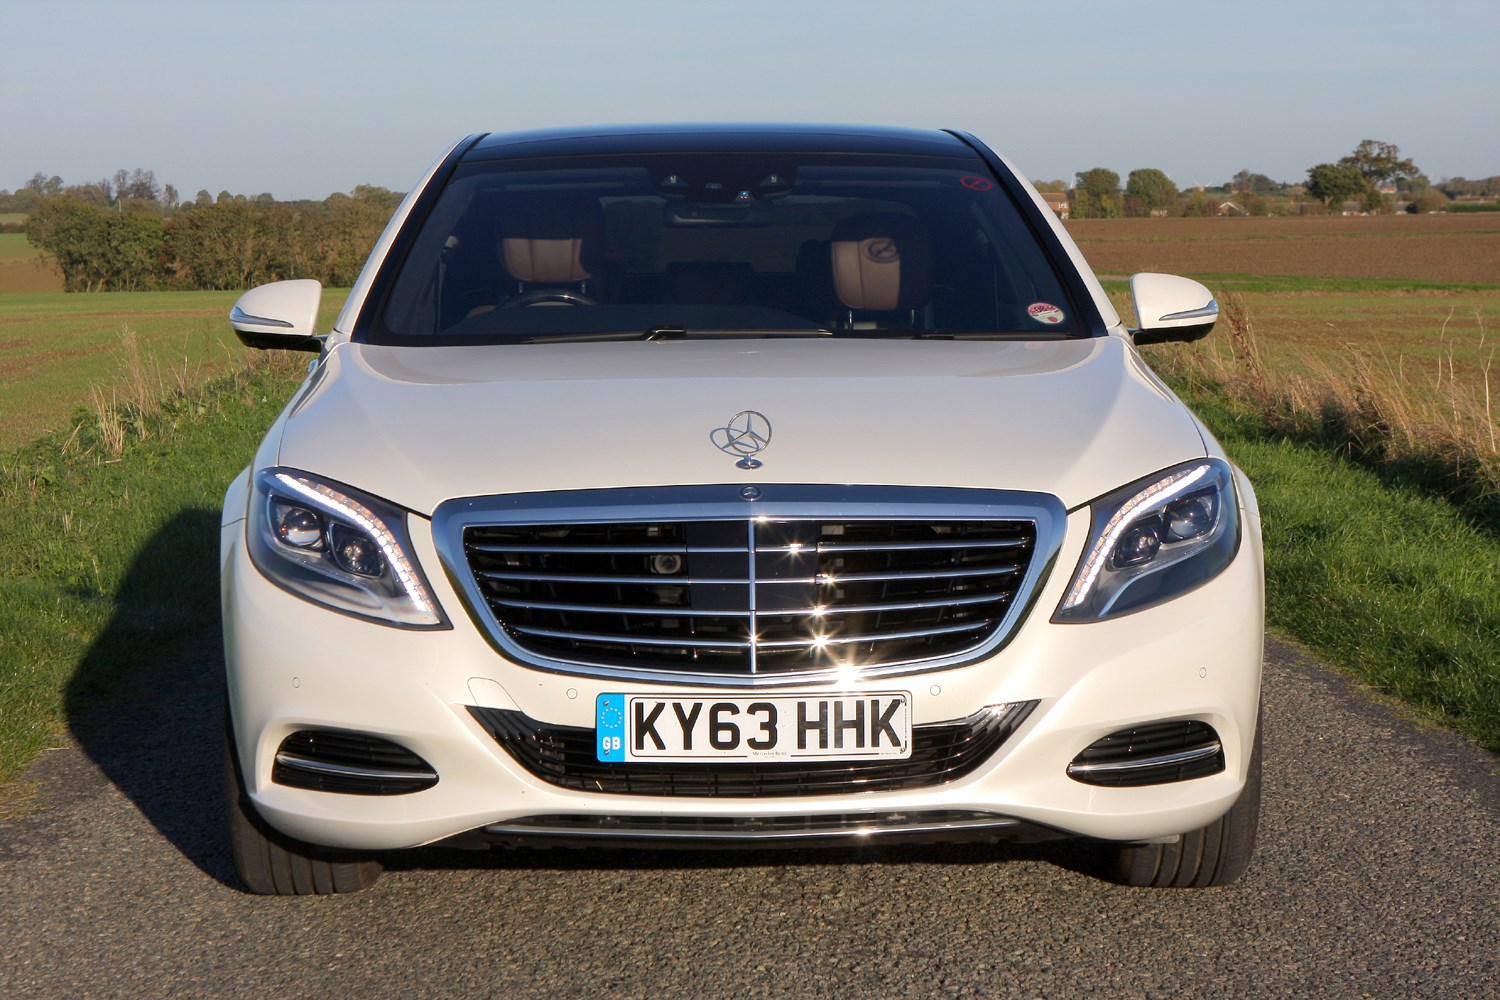 Mercedes benz s class saloon 2013 photos parkers for How much is a 2014 mercedes benz s550